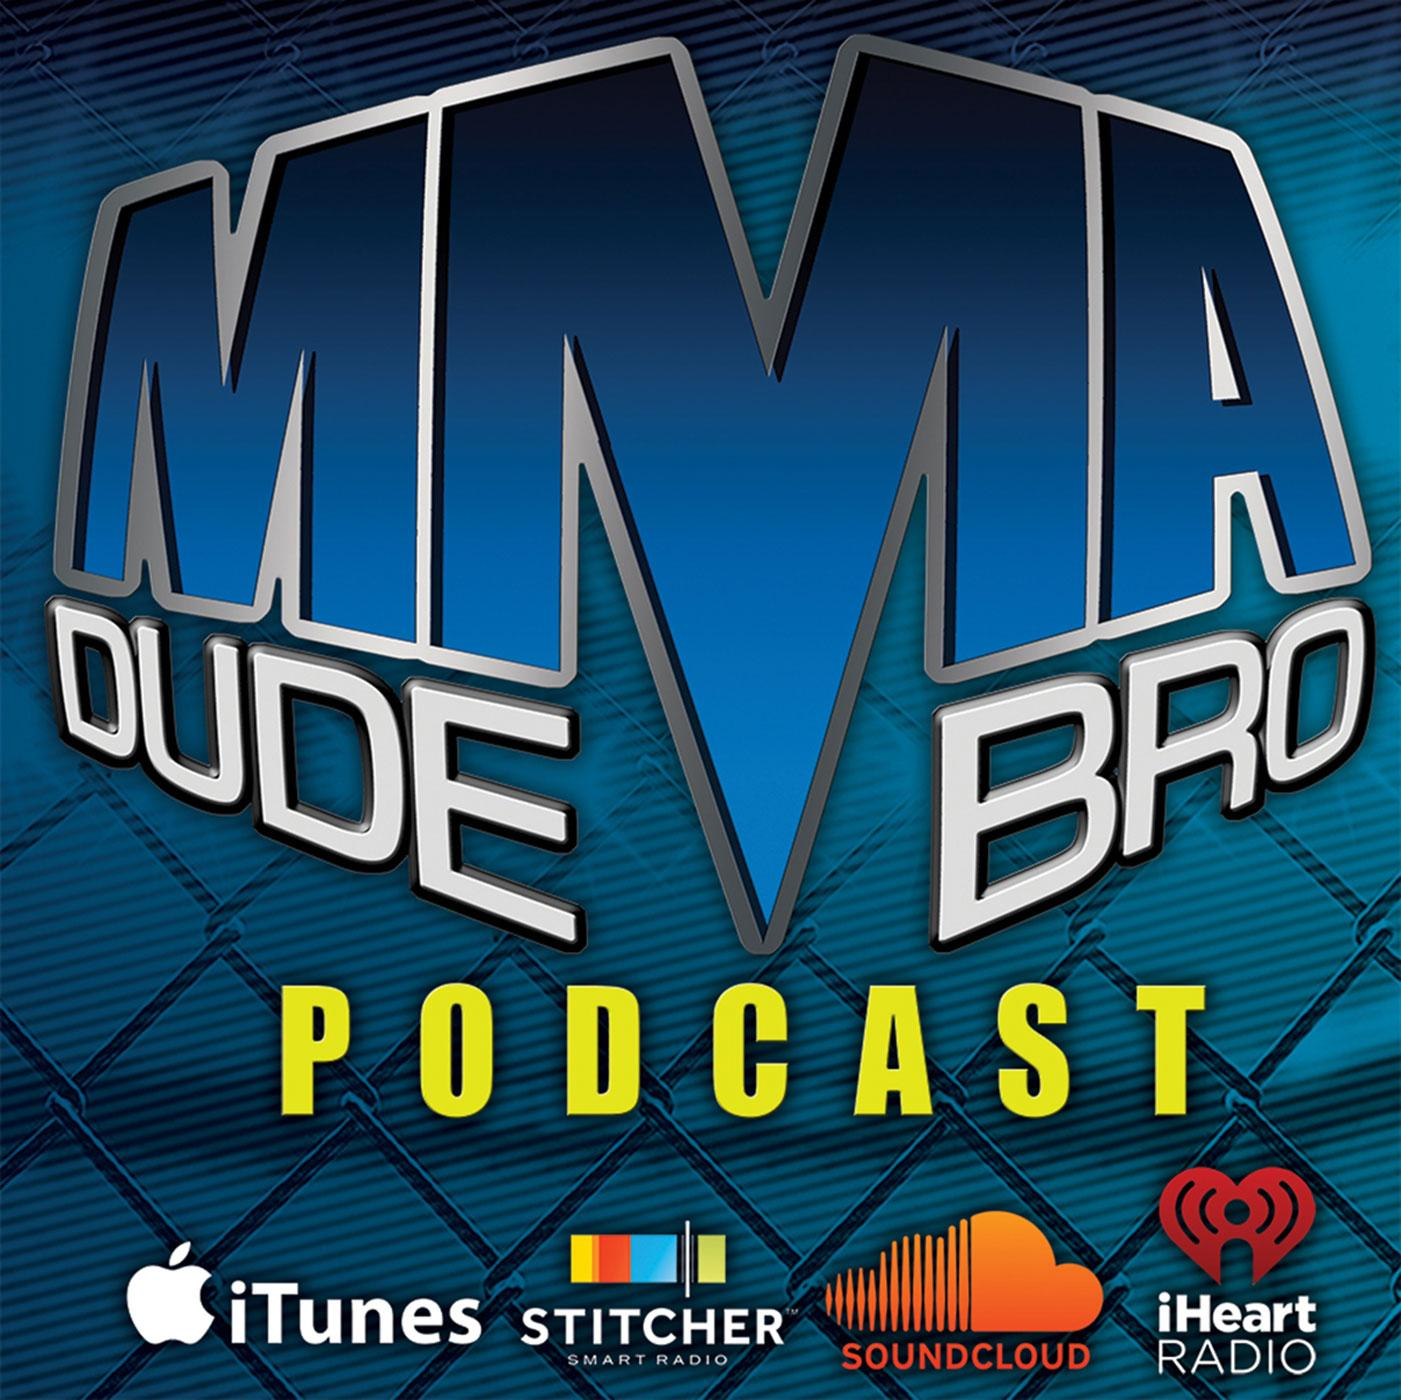 MMA Dude Bro - Episode 115 with guest Ray Borg